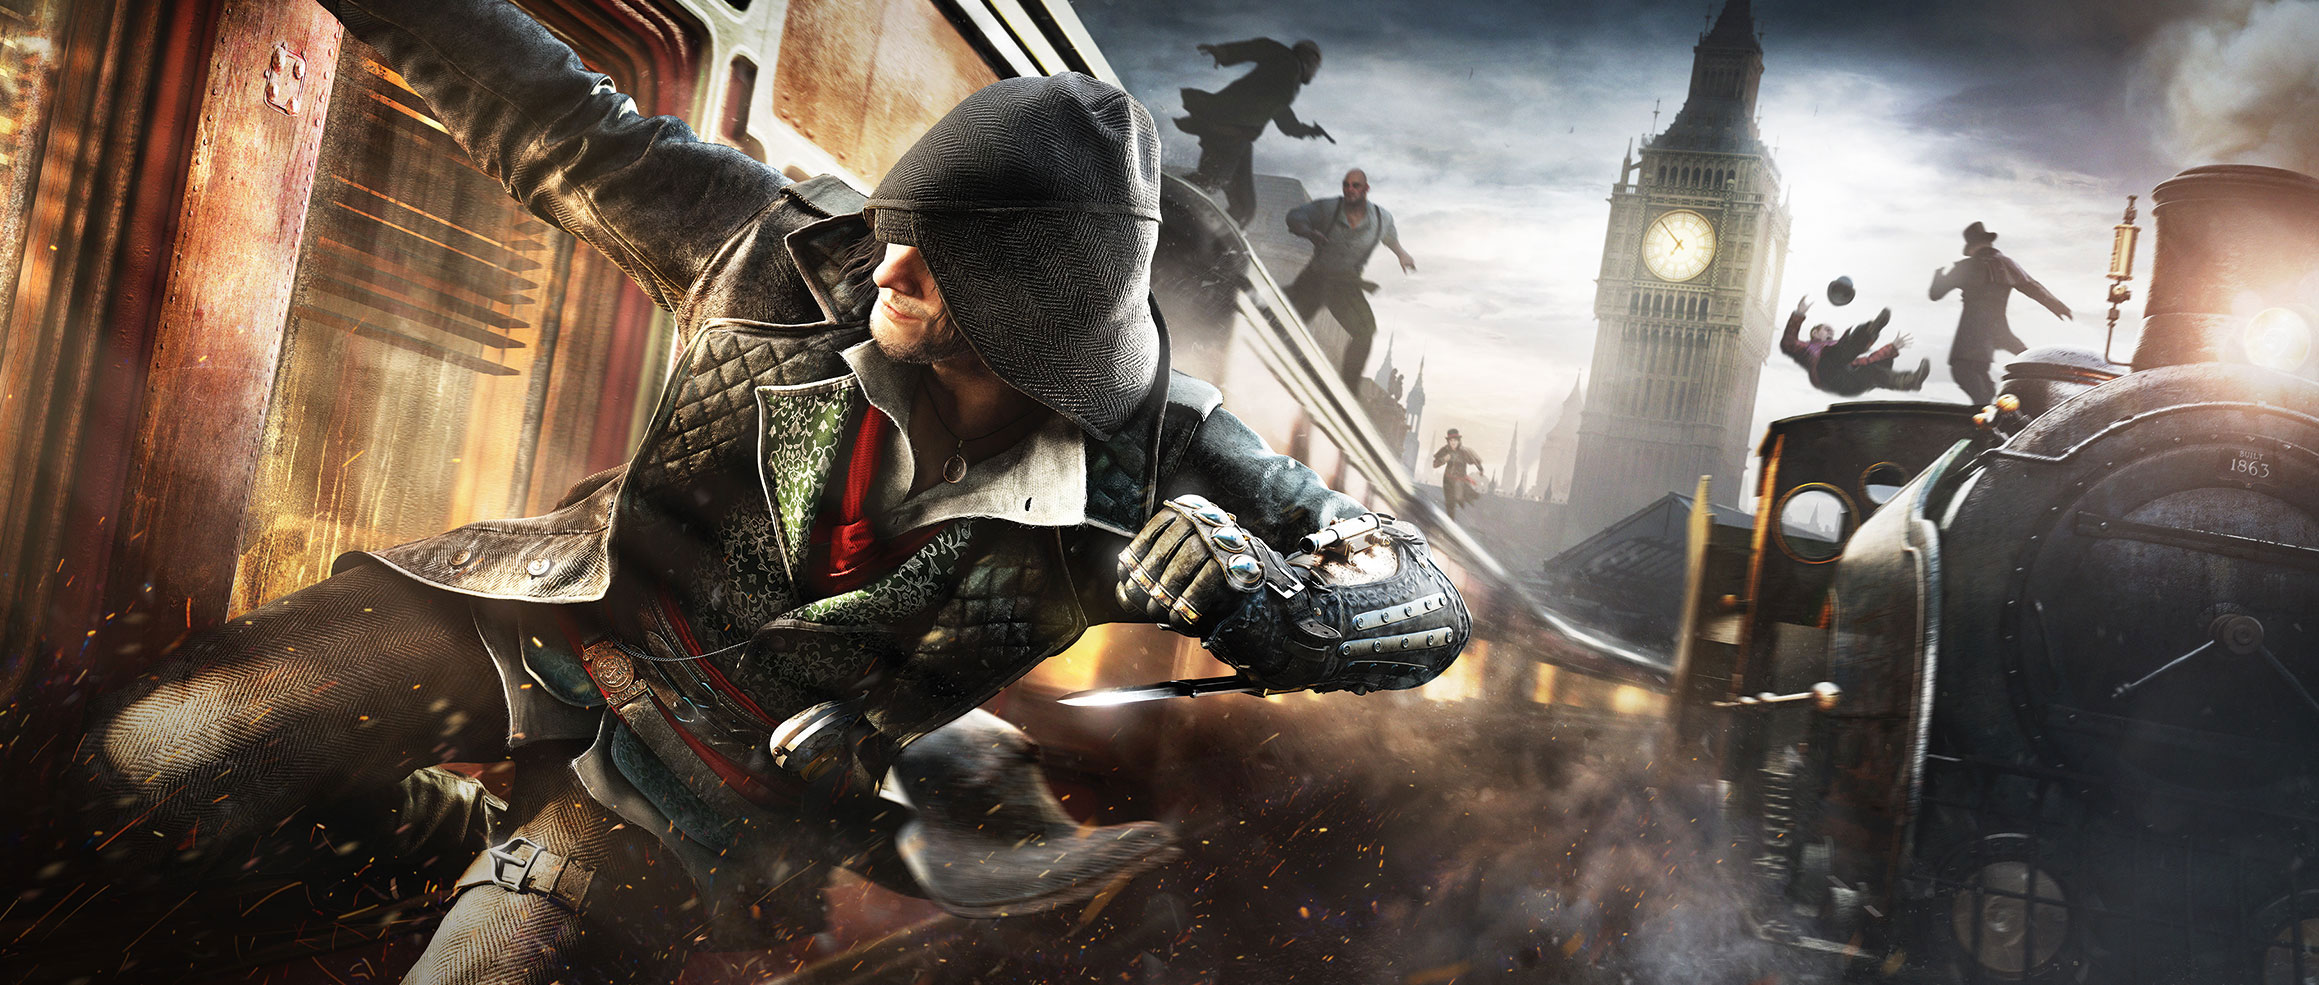 Assassin's Creed Syndicate animated short and new screens ...